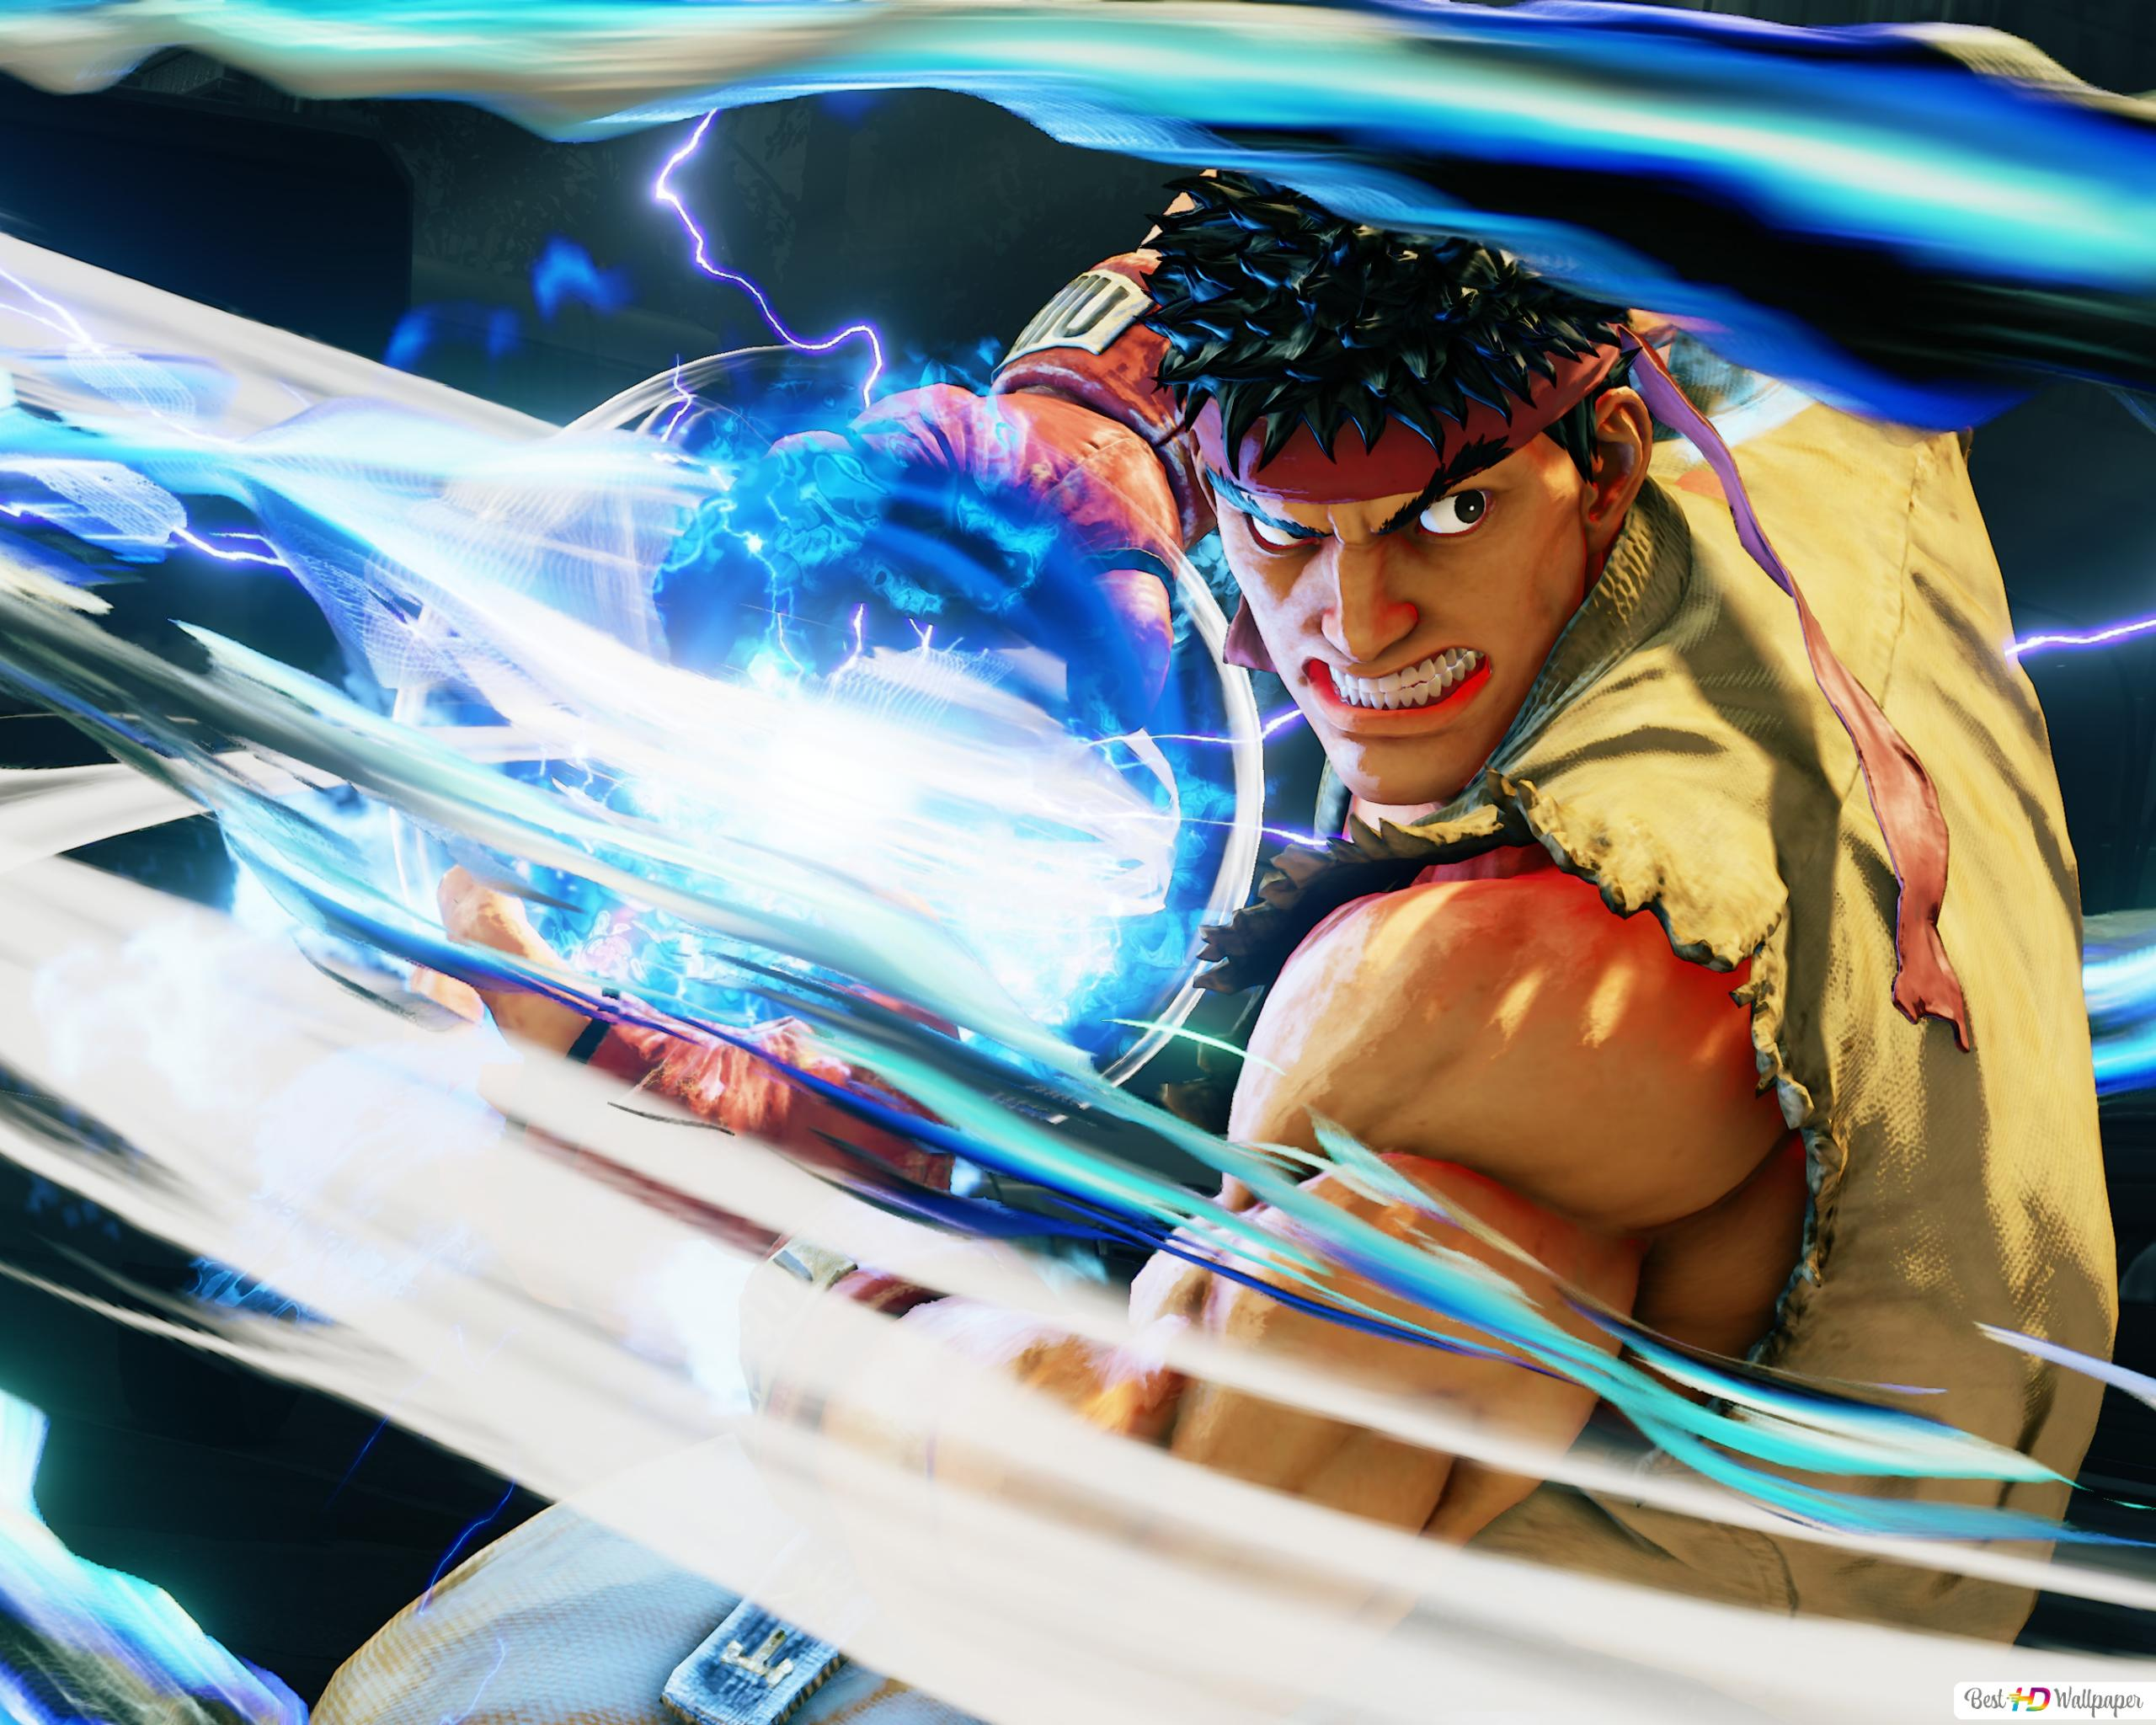 Street Fighter V Ryu Hadouken The Fighter Hd Wallpaper Download